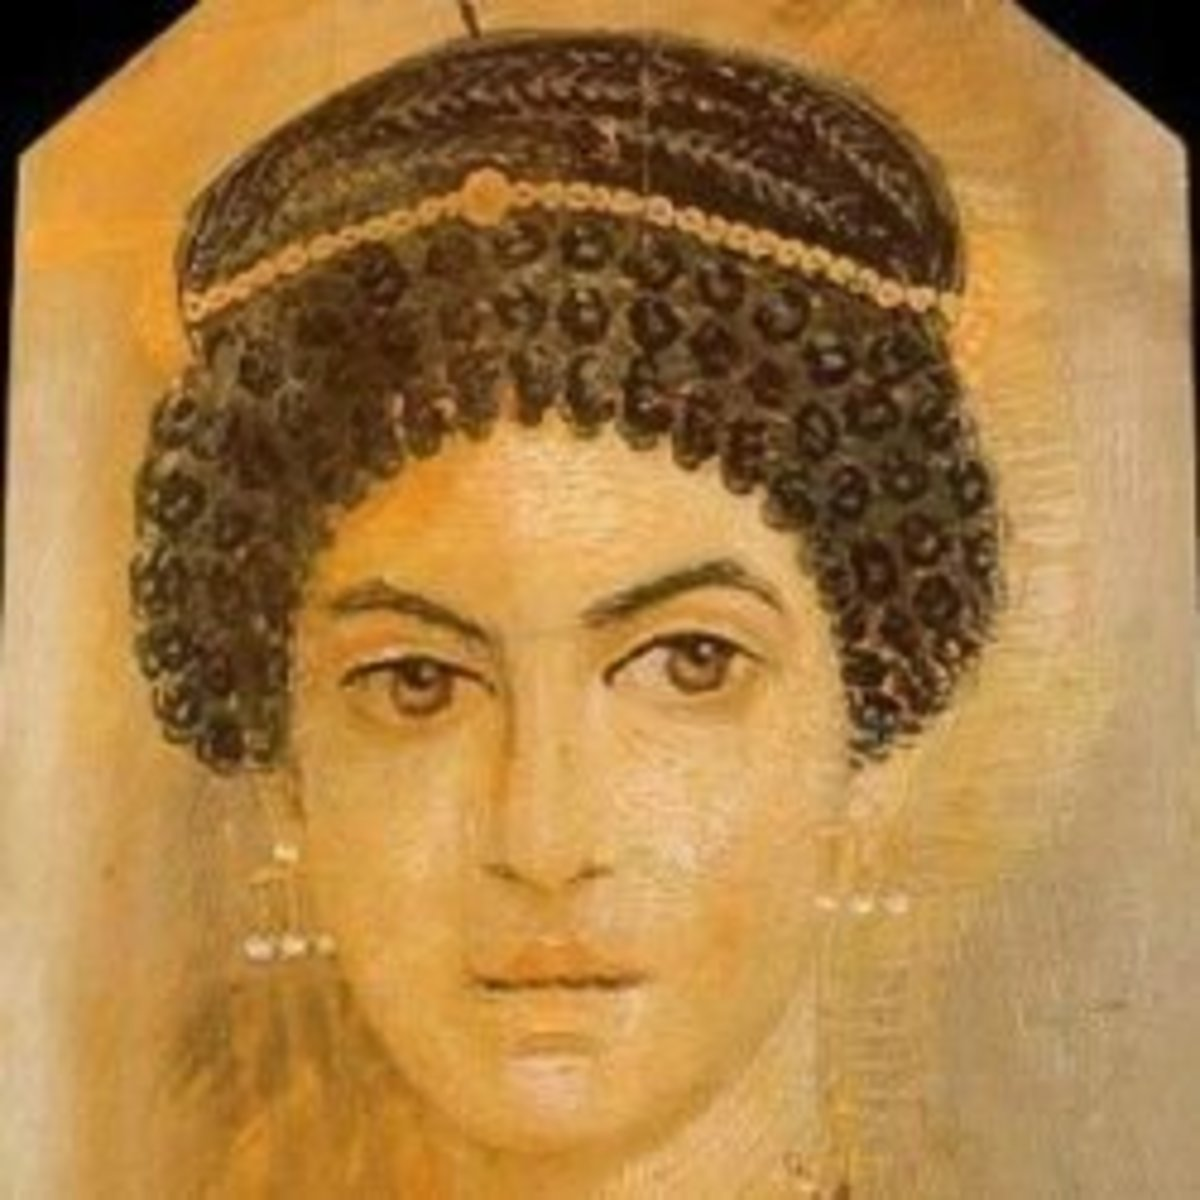 Funerary Portrait Painting of a Young Woman from the Roman Period